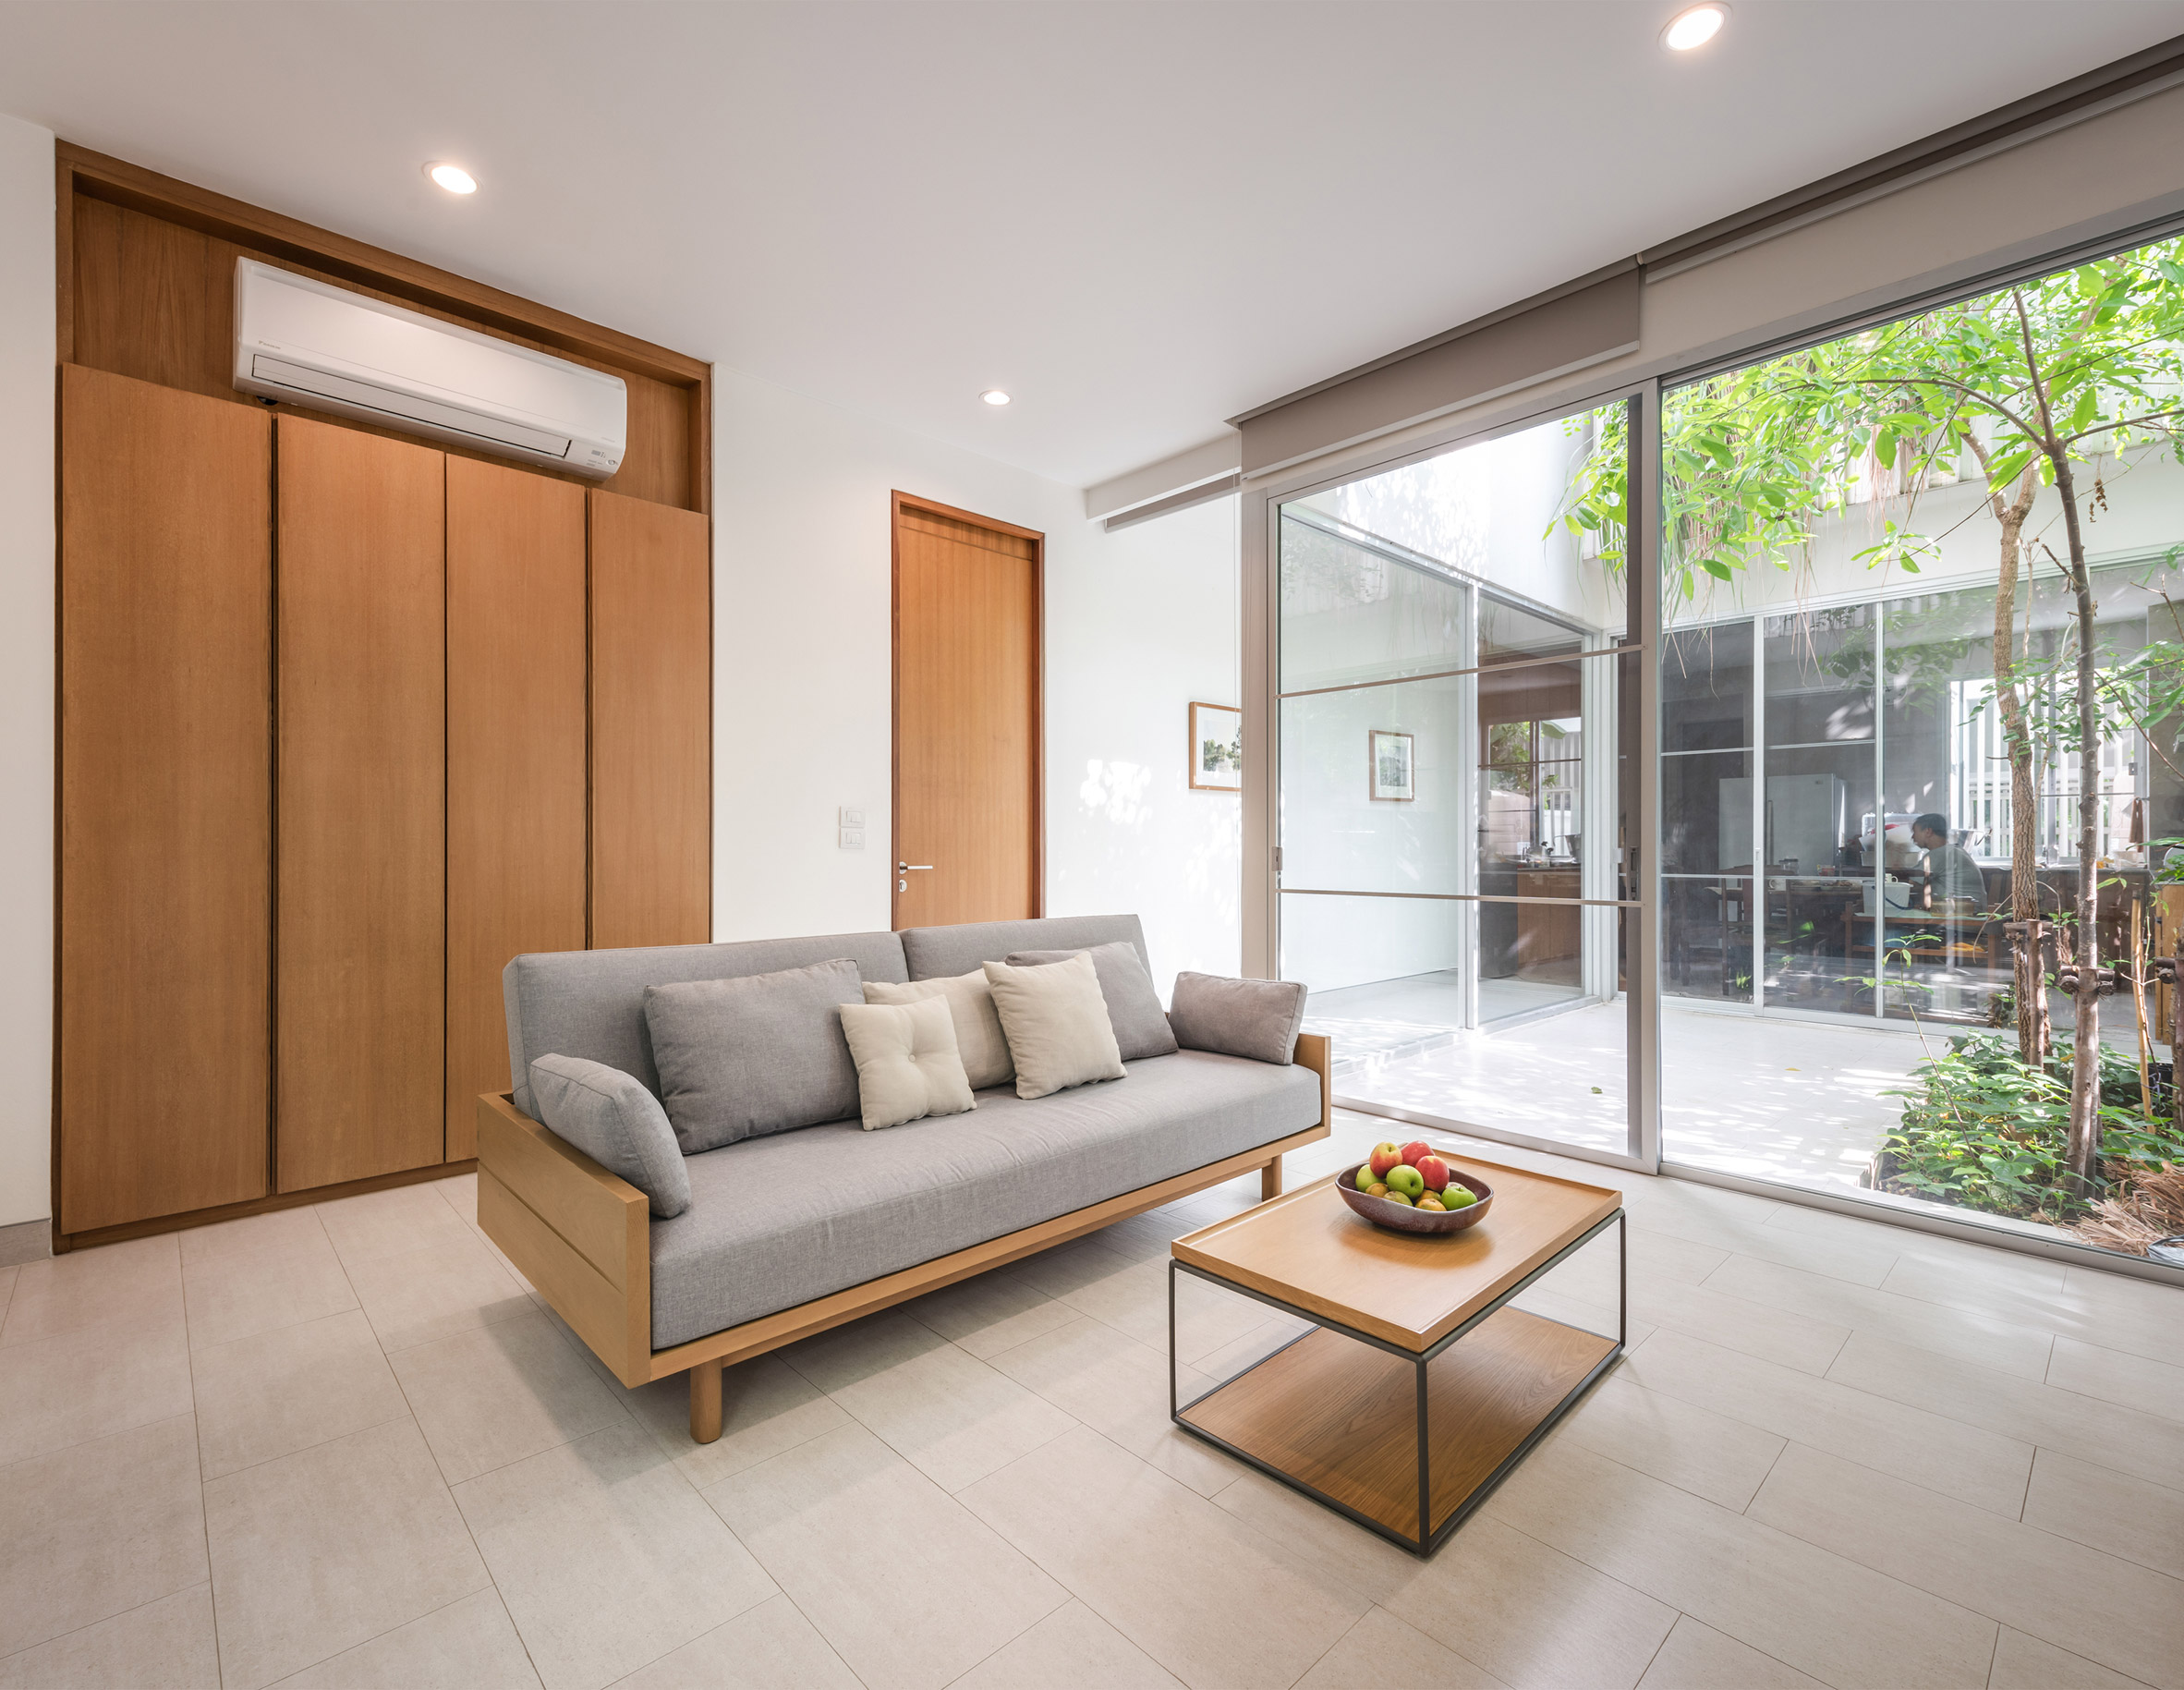 Living room and internal courtyard of the Forest House by Shma Company